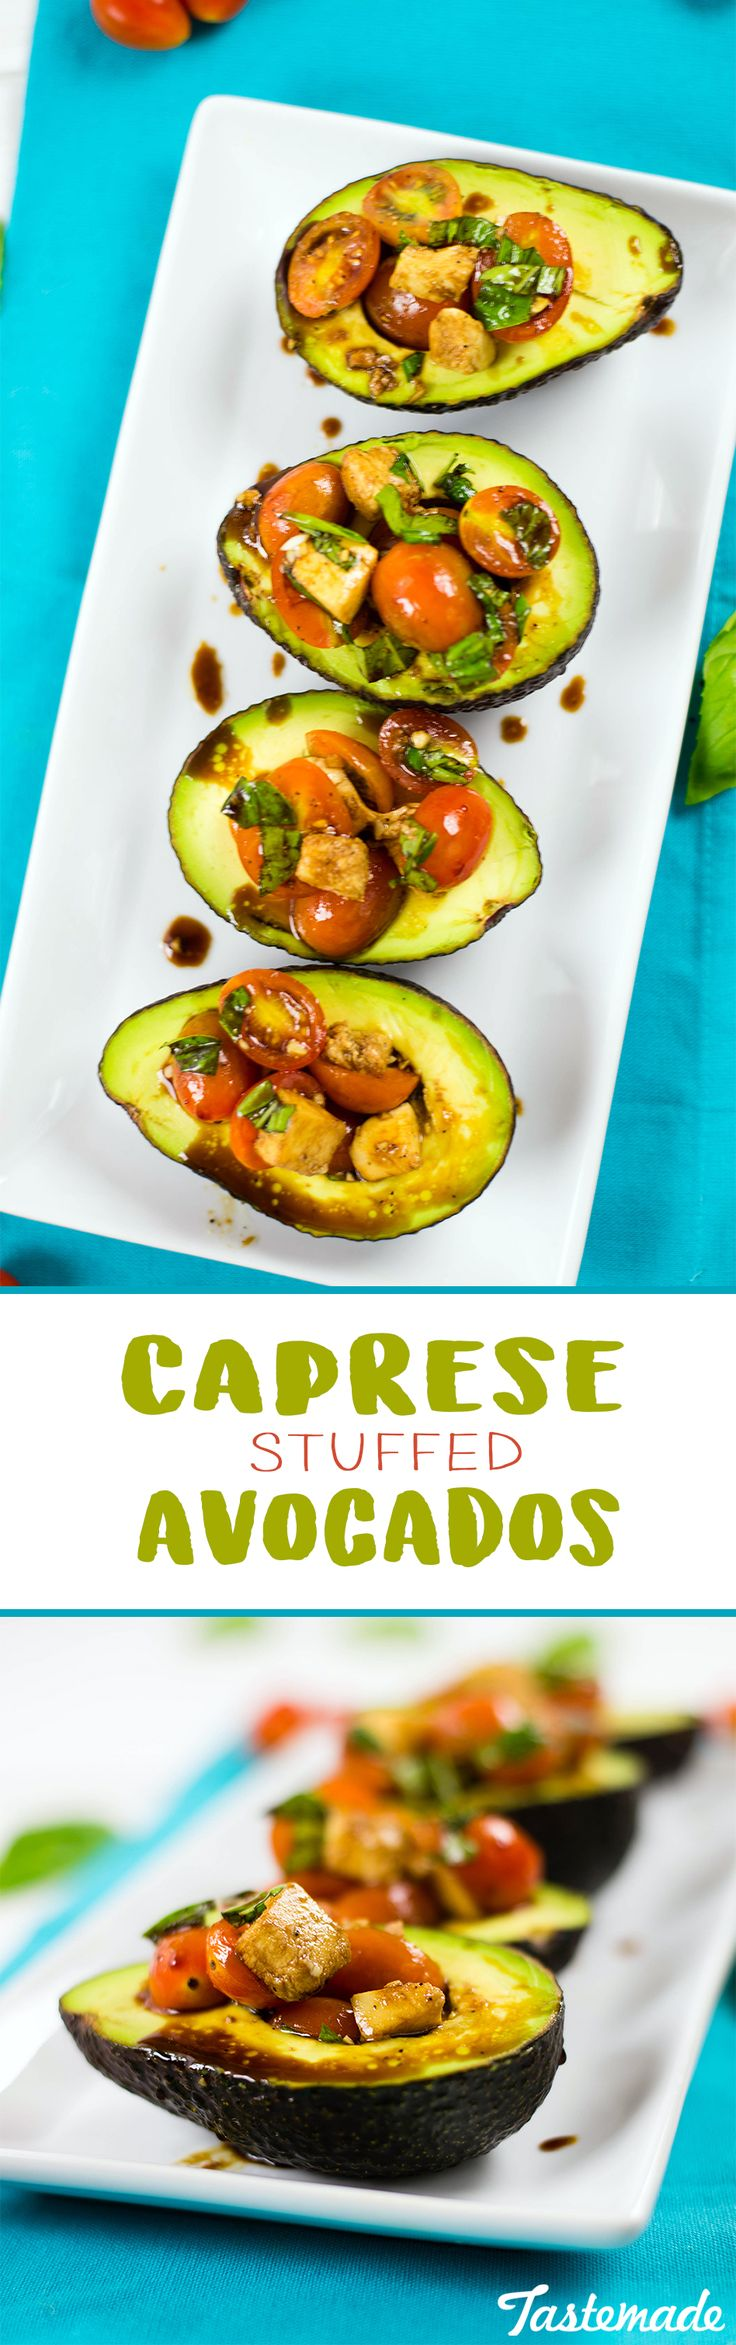 Avocados make the perfect natural bowls for a simple Italian salad.